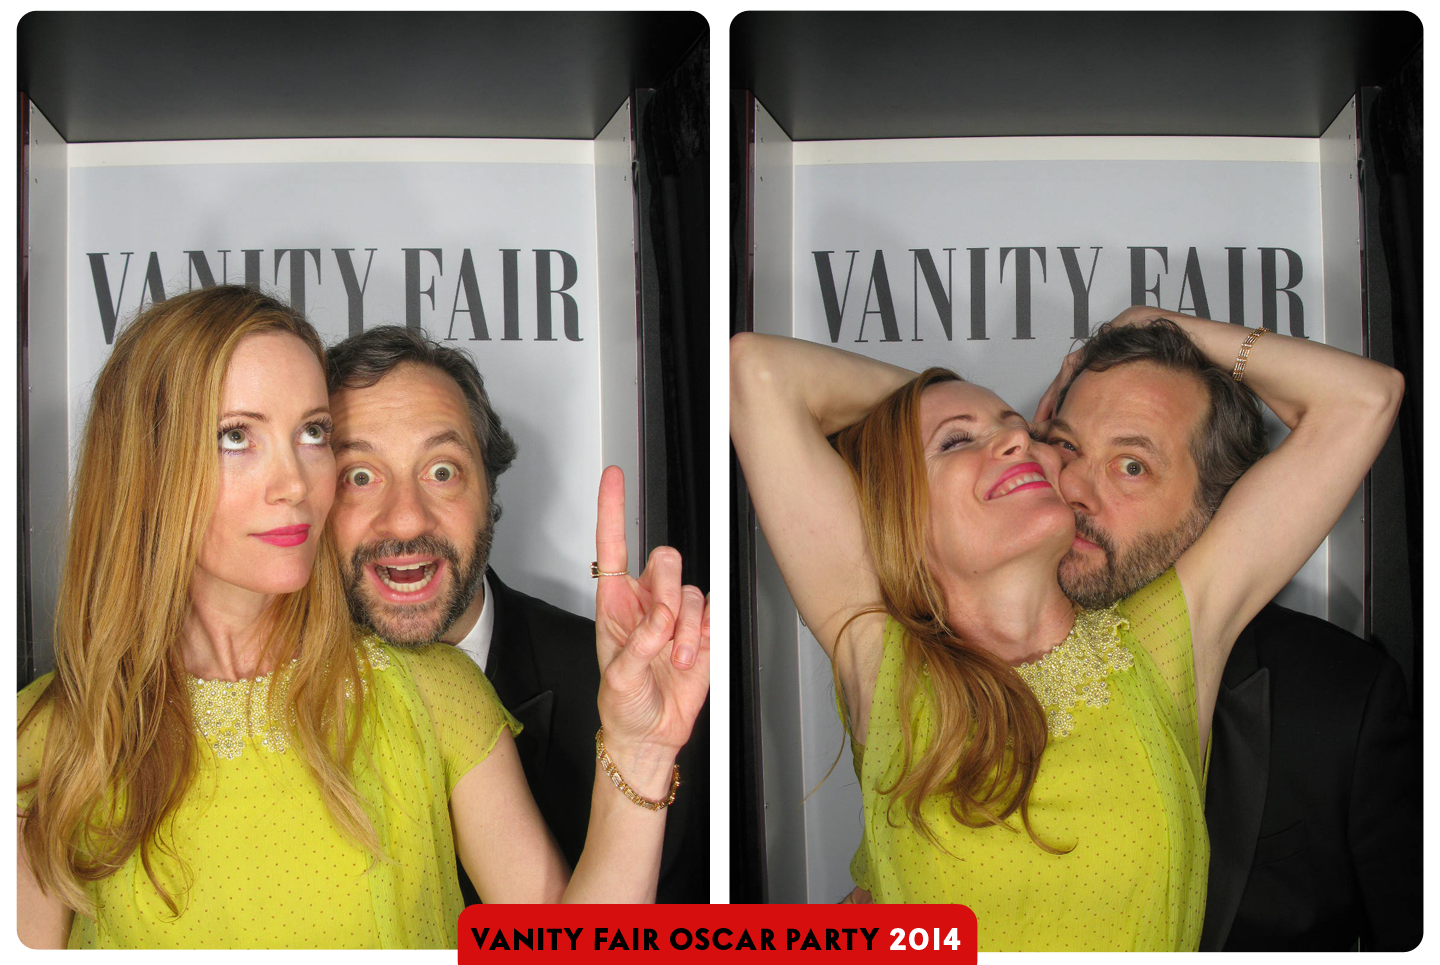 http://www.vanityfair.com/vf-hollywood/photo-booth-kerry-washington-neil-patrick-harris